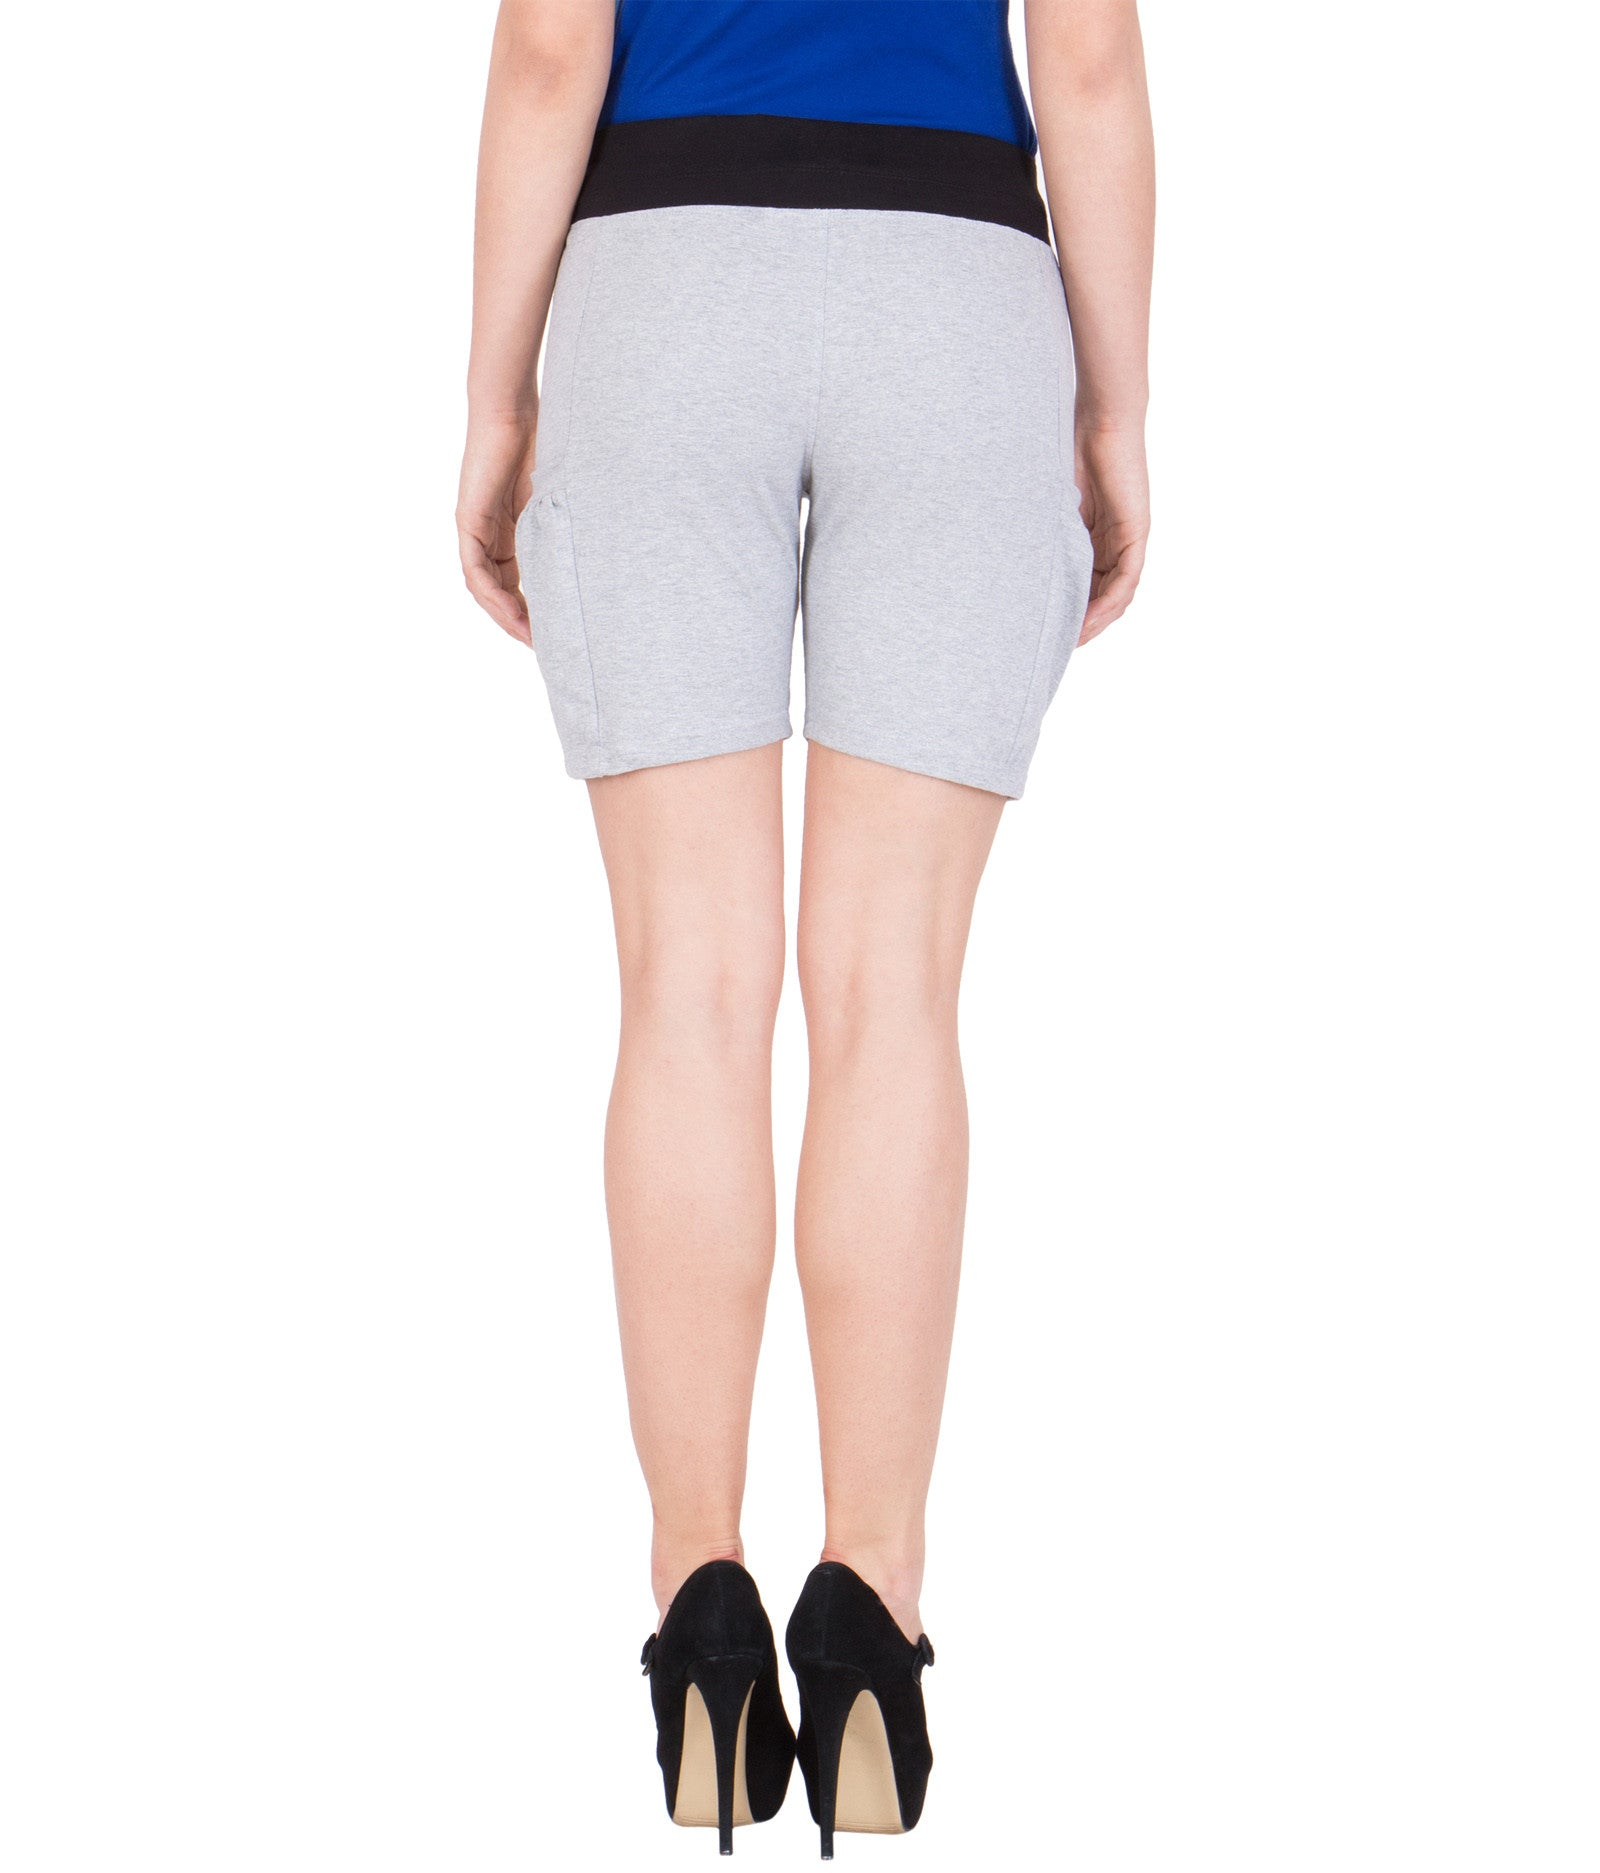 ... AMERICAN ELM-Women s Beautiful Cotton Stitched Shorts - HS-15-Grey-17 9d974ef45